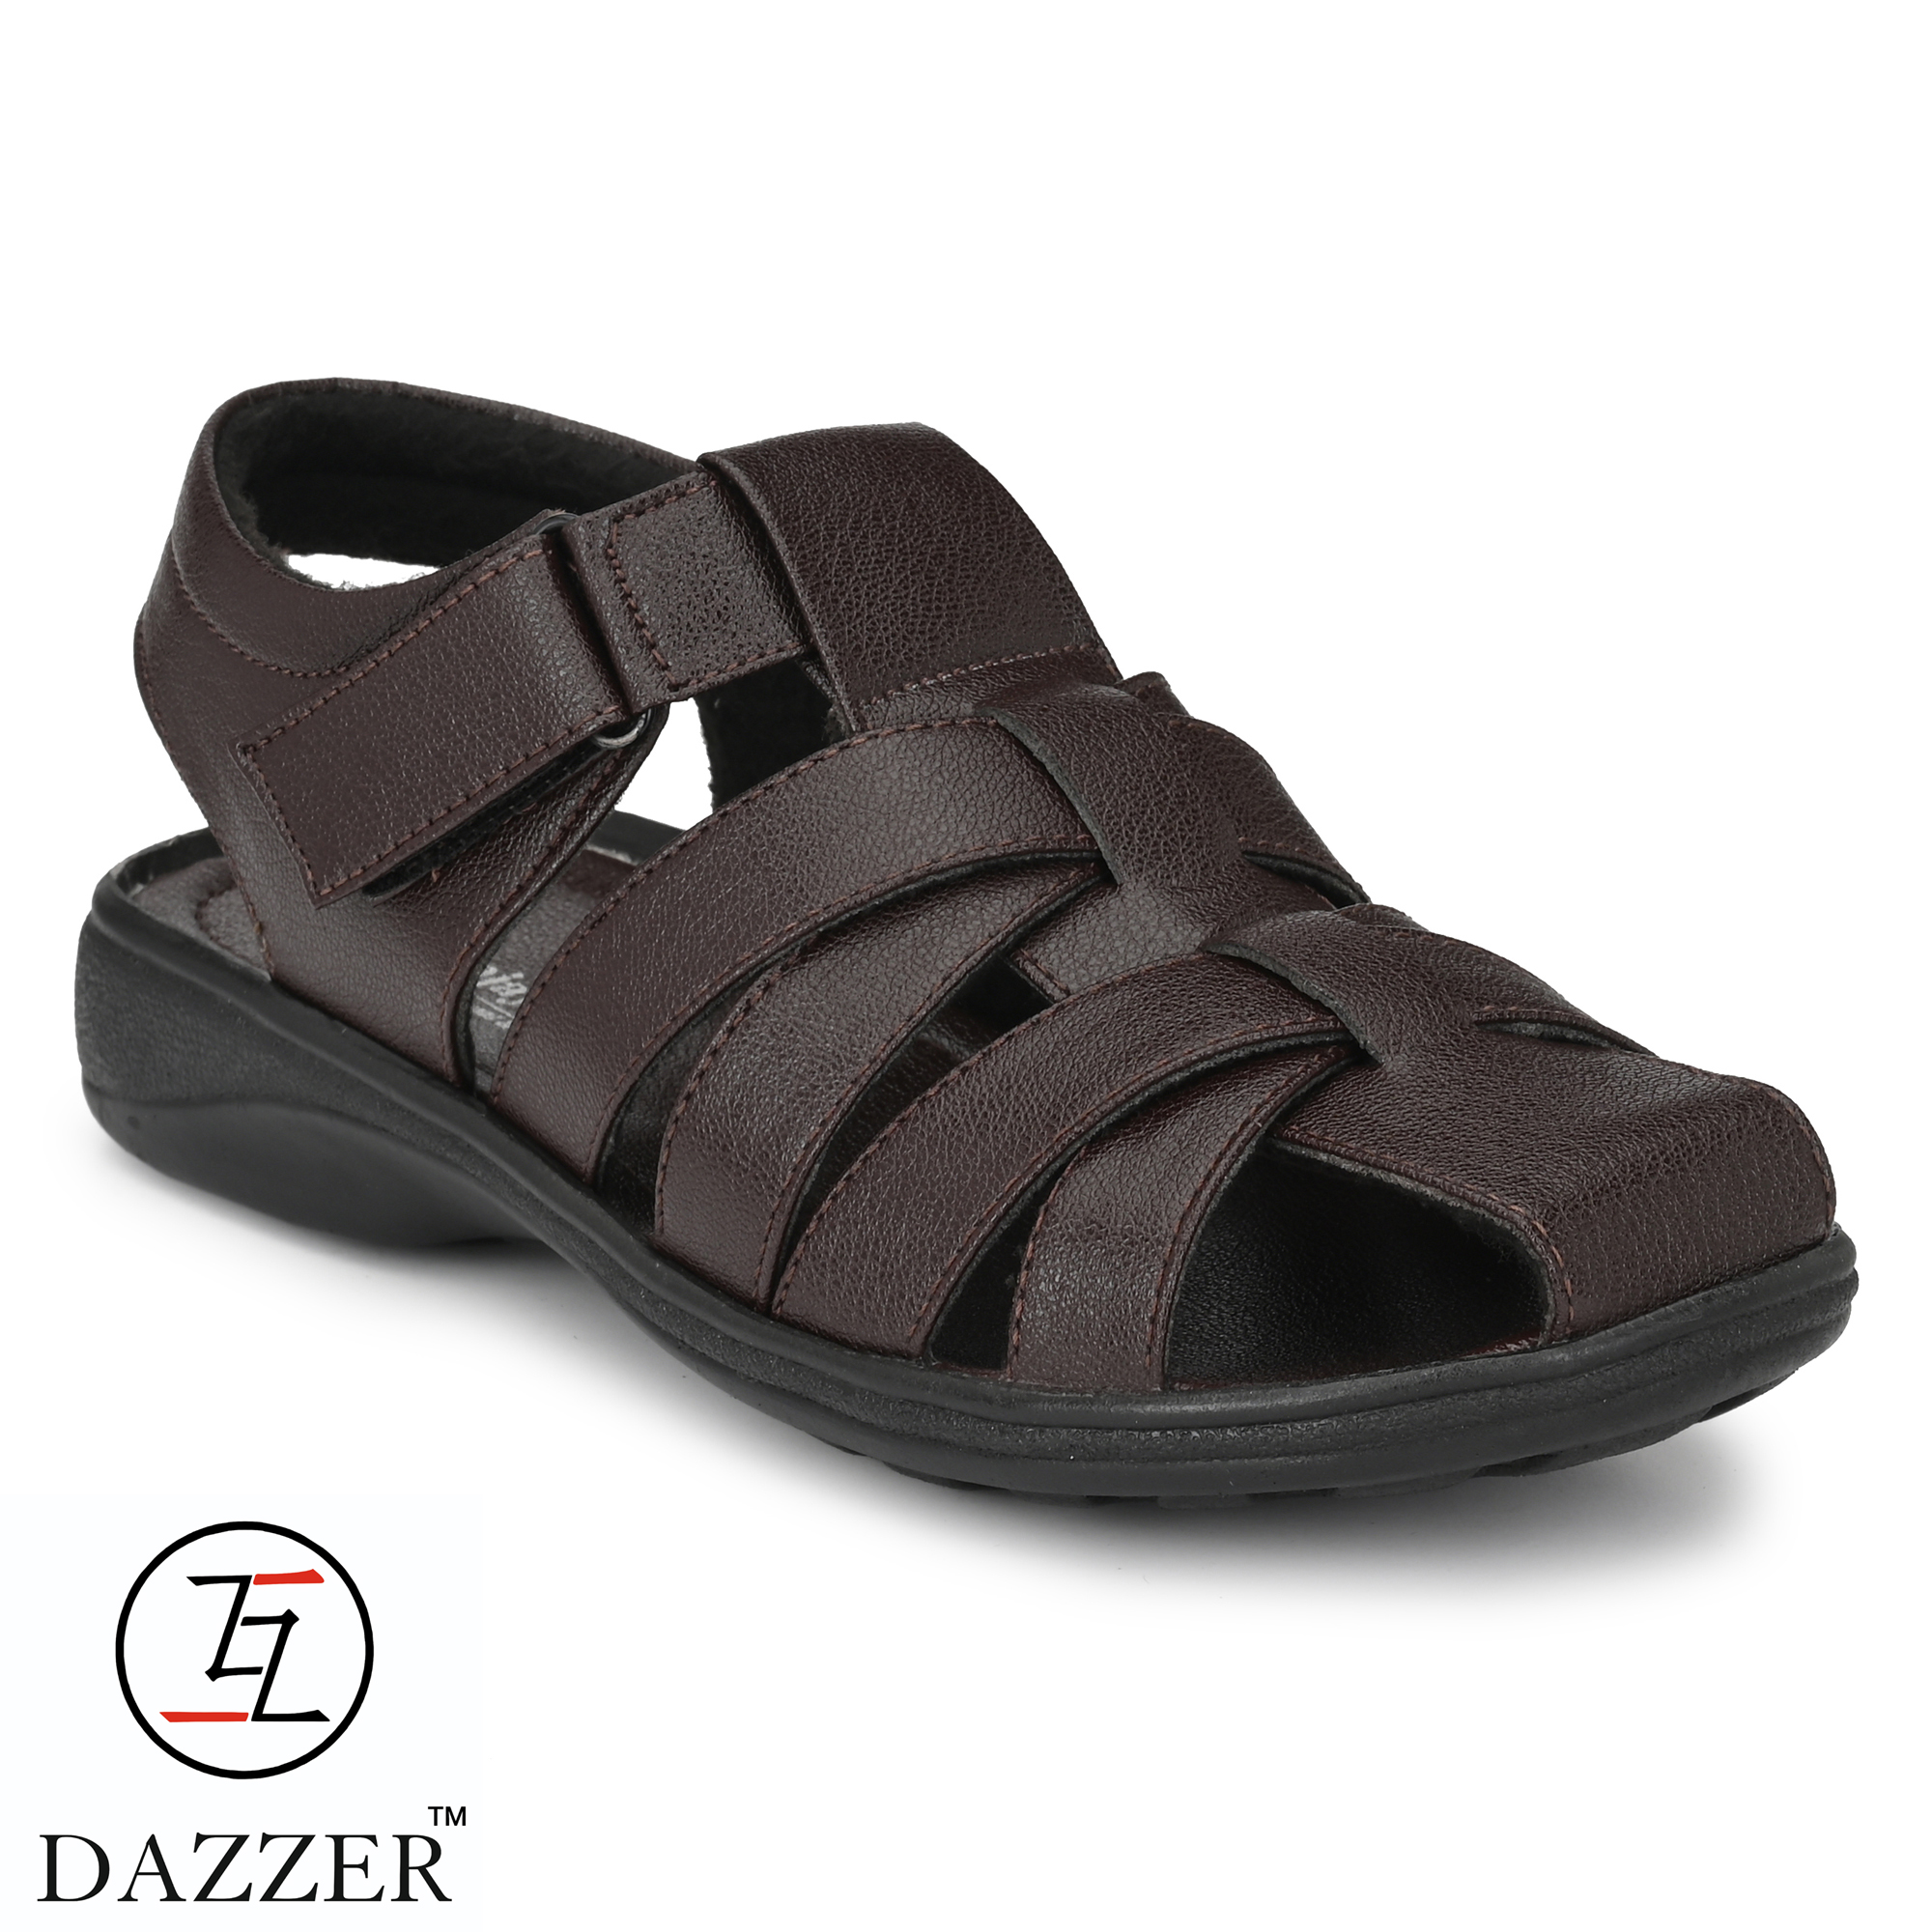 Dazzer 581 Velcro Synthetic Sandals For Men 581Brown (Brown, 6-10, 8 PAIR)